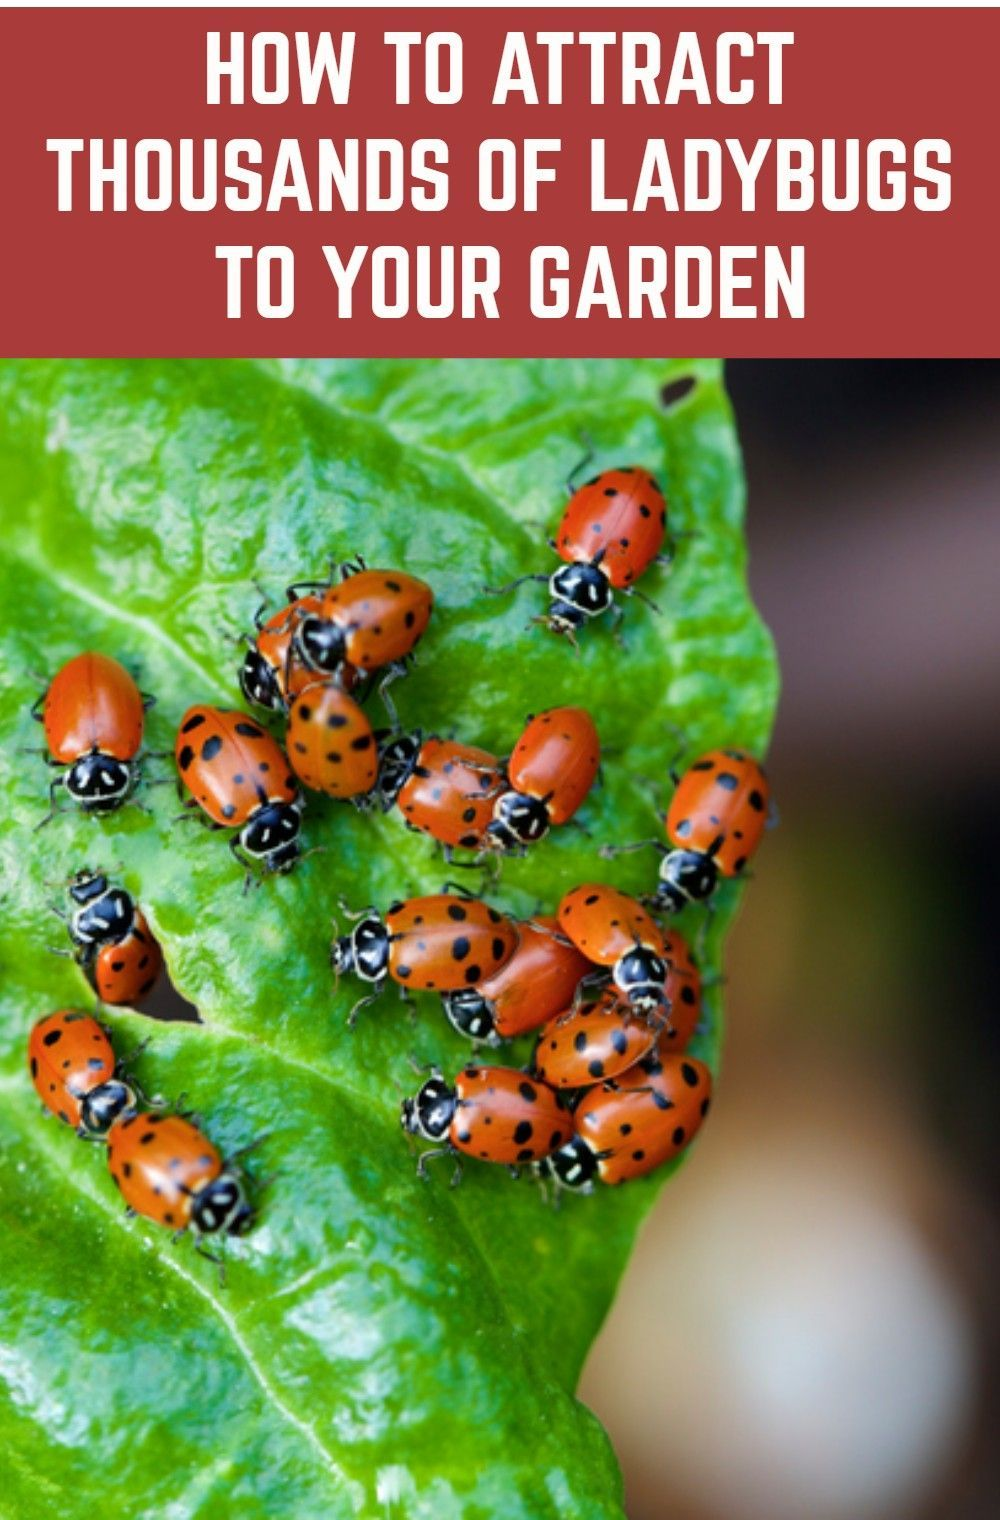 Not only are they beautiful, ladybugs are the number one most beneficial insect for your garden. Here's how to attract them and keep them in your garden.